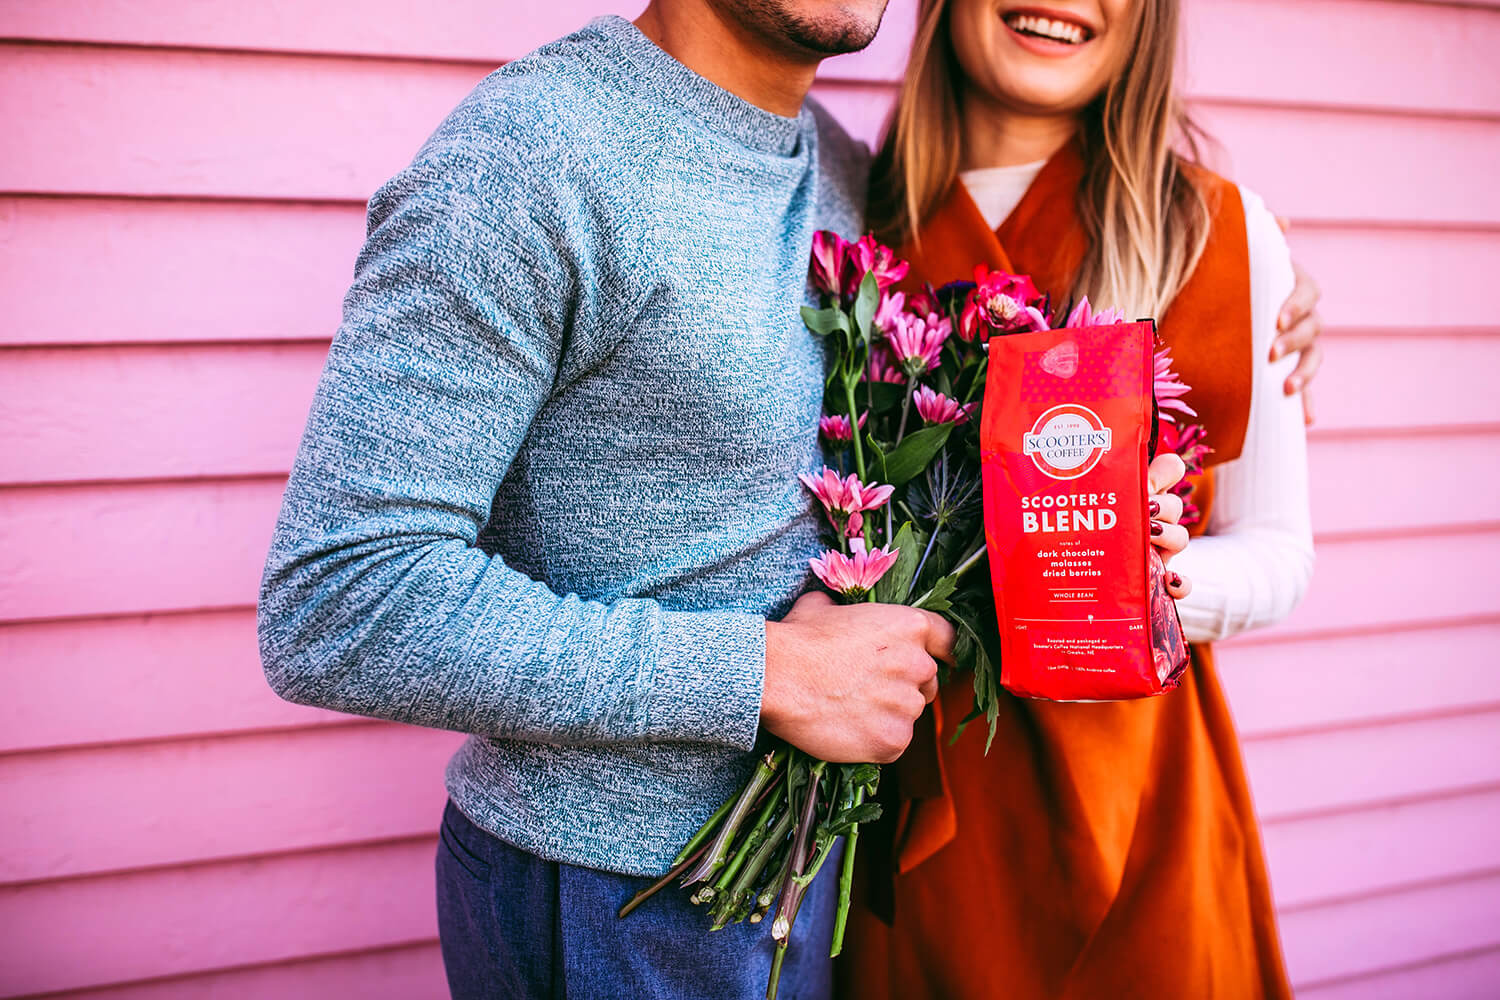 Man holding flowers next to woman holding red Scooter's Coffee bagged coffee